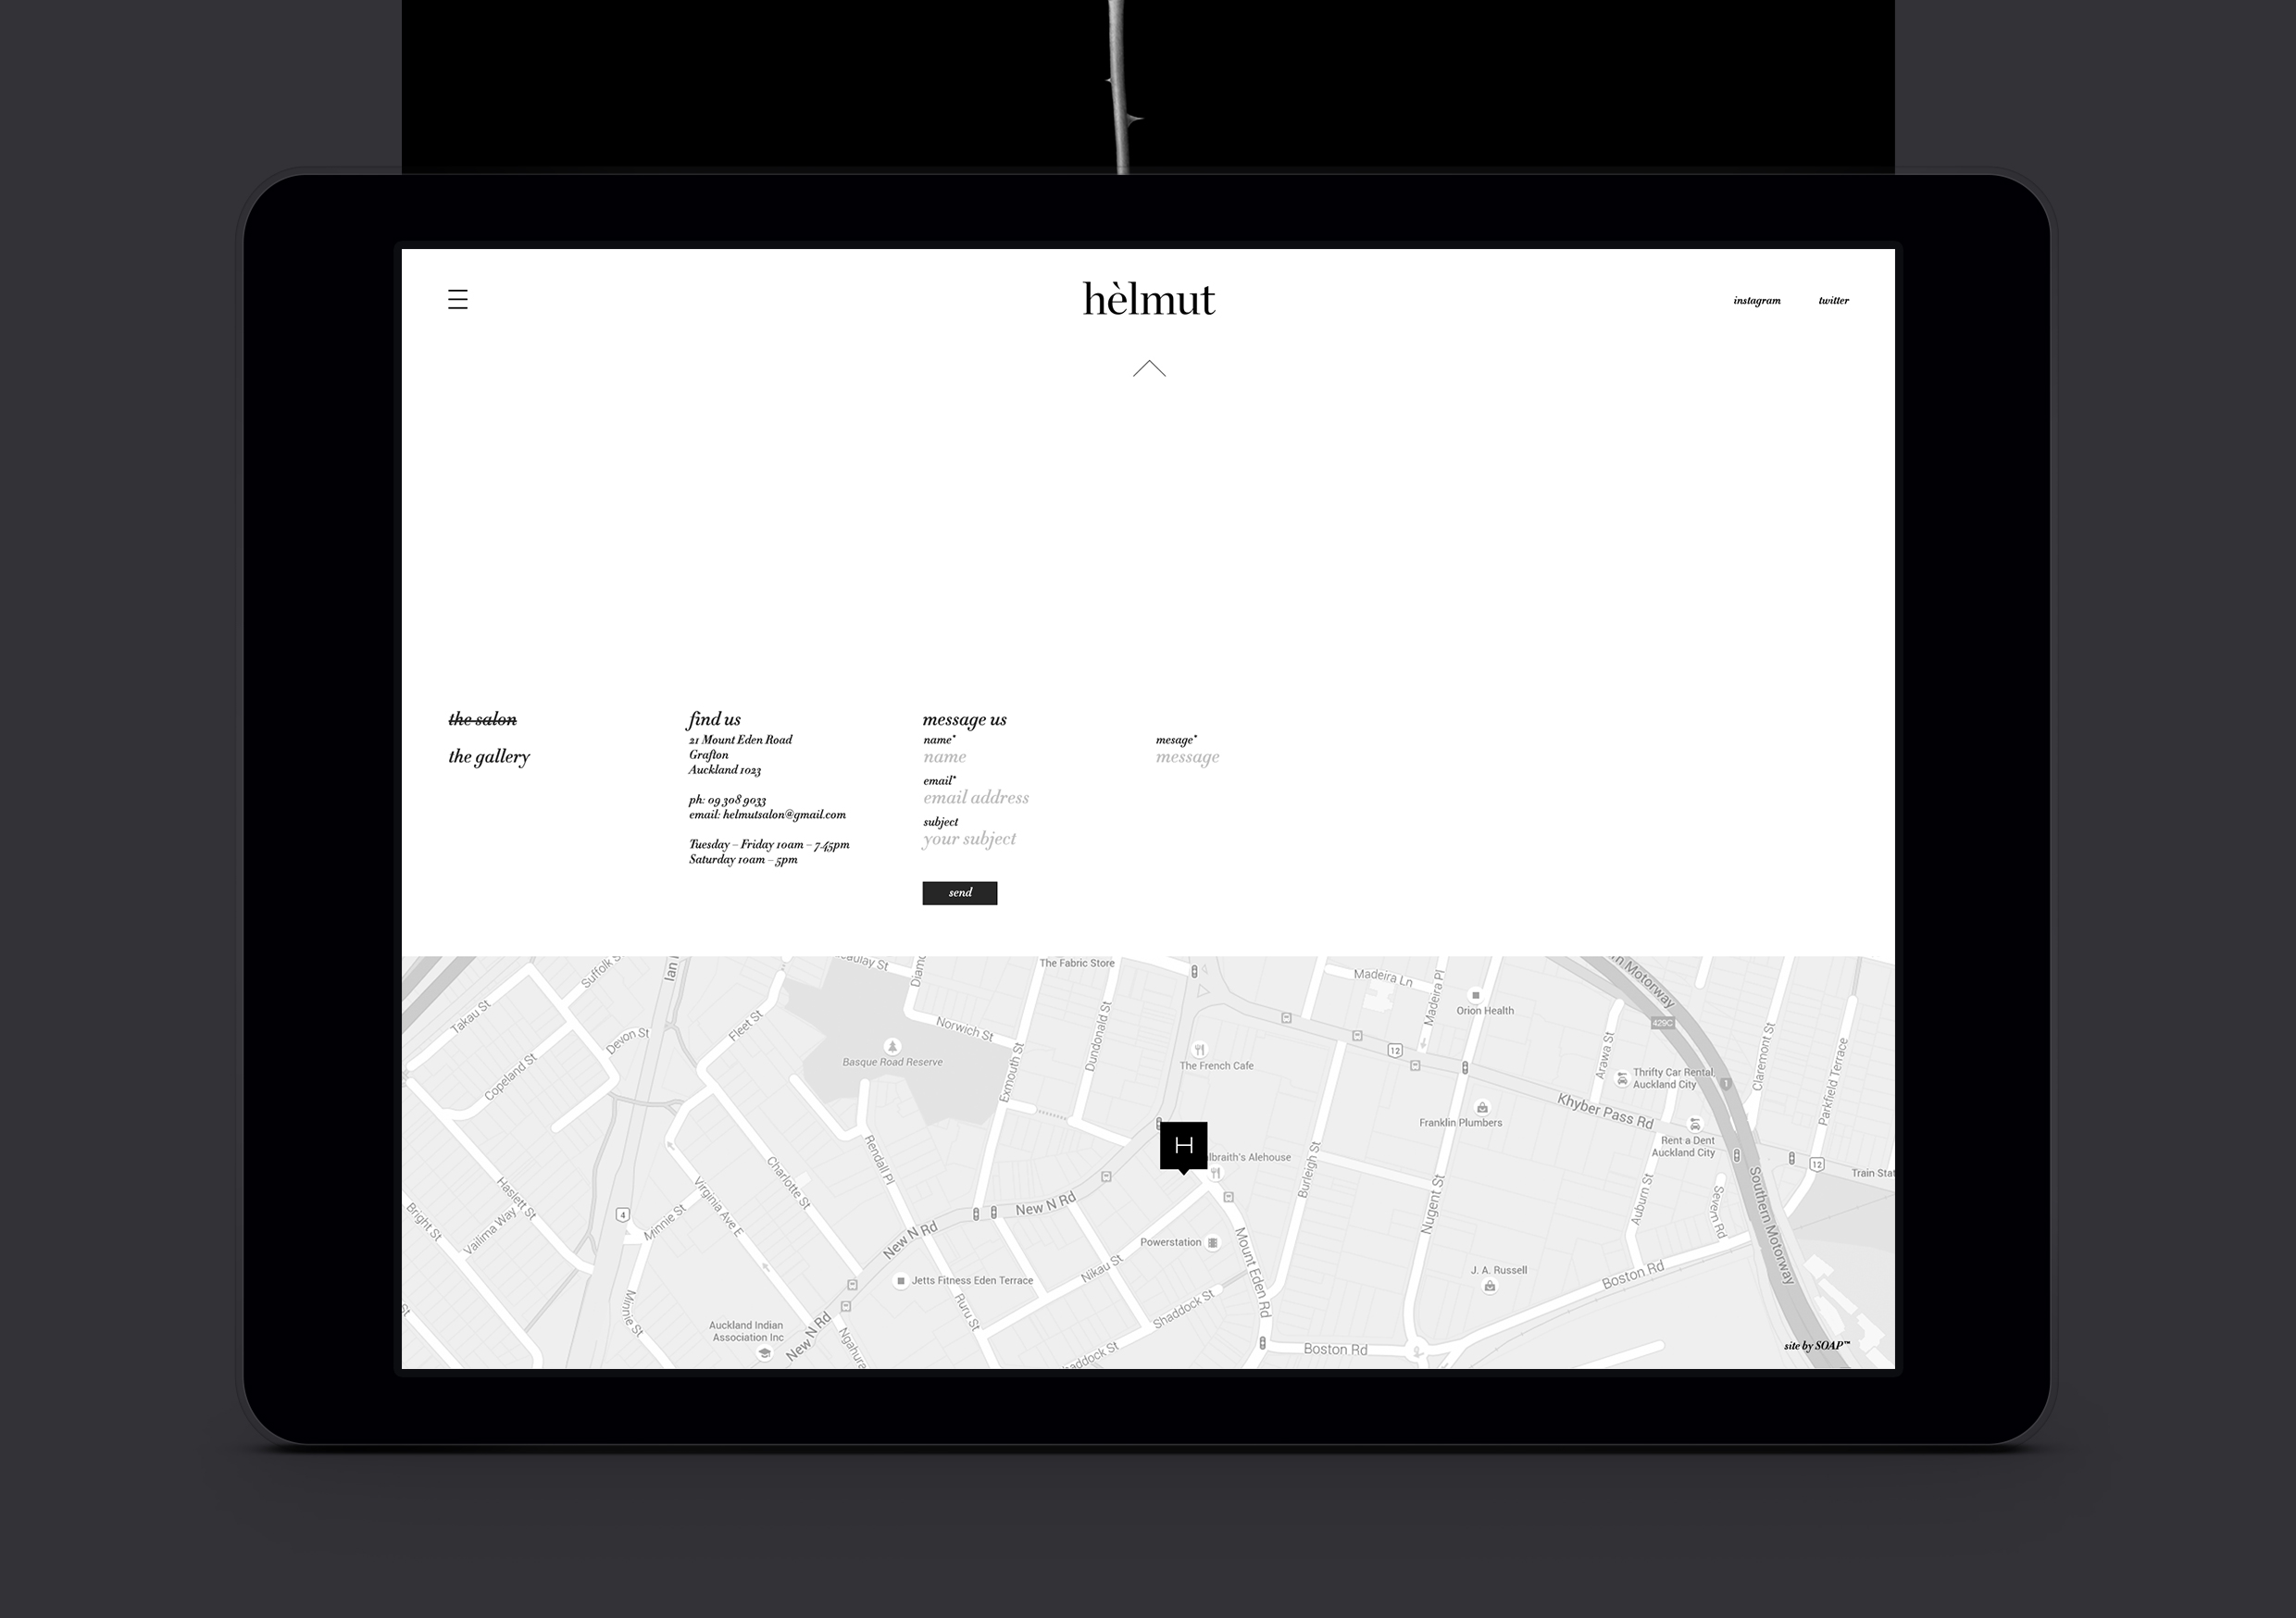 Helmut Salon website contact page showing map and elegant type